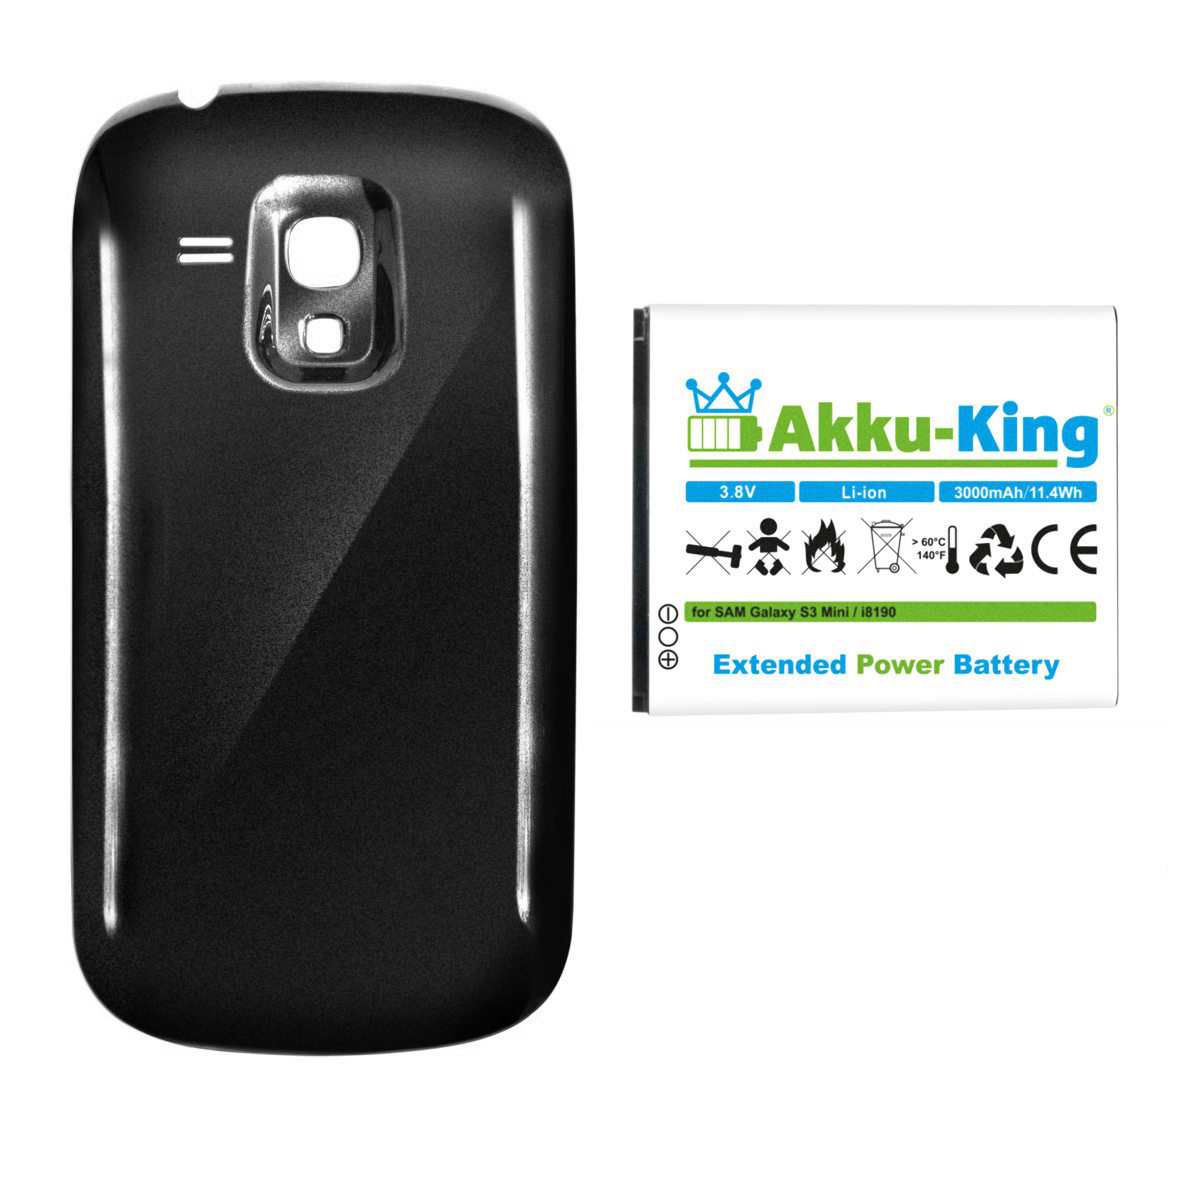 akku king 3000mah power akku f r samsung galaxy s3 mini gt. Black Bedroom Furniture Sets. Home Design Ideas